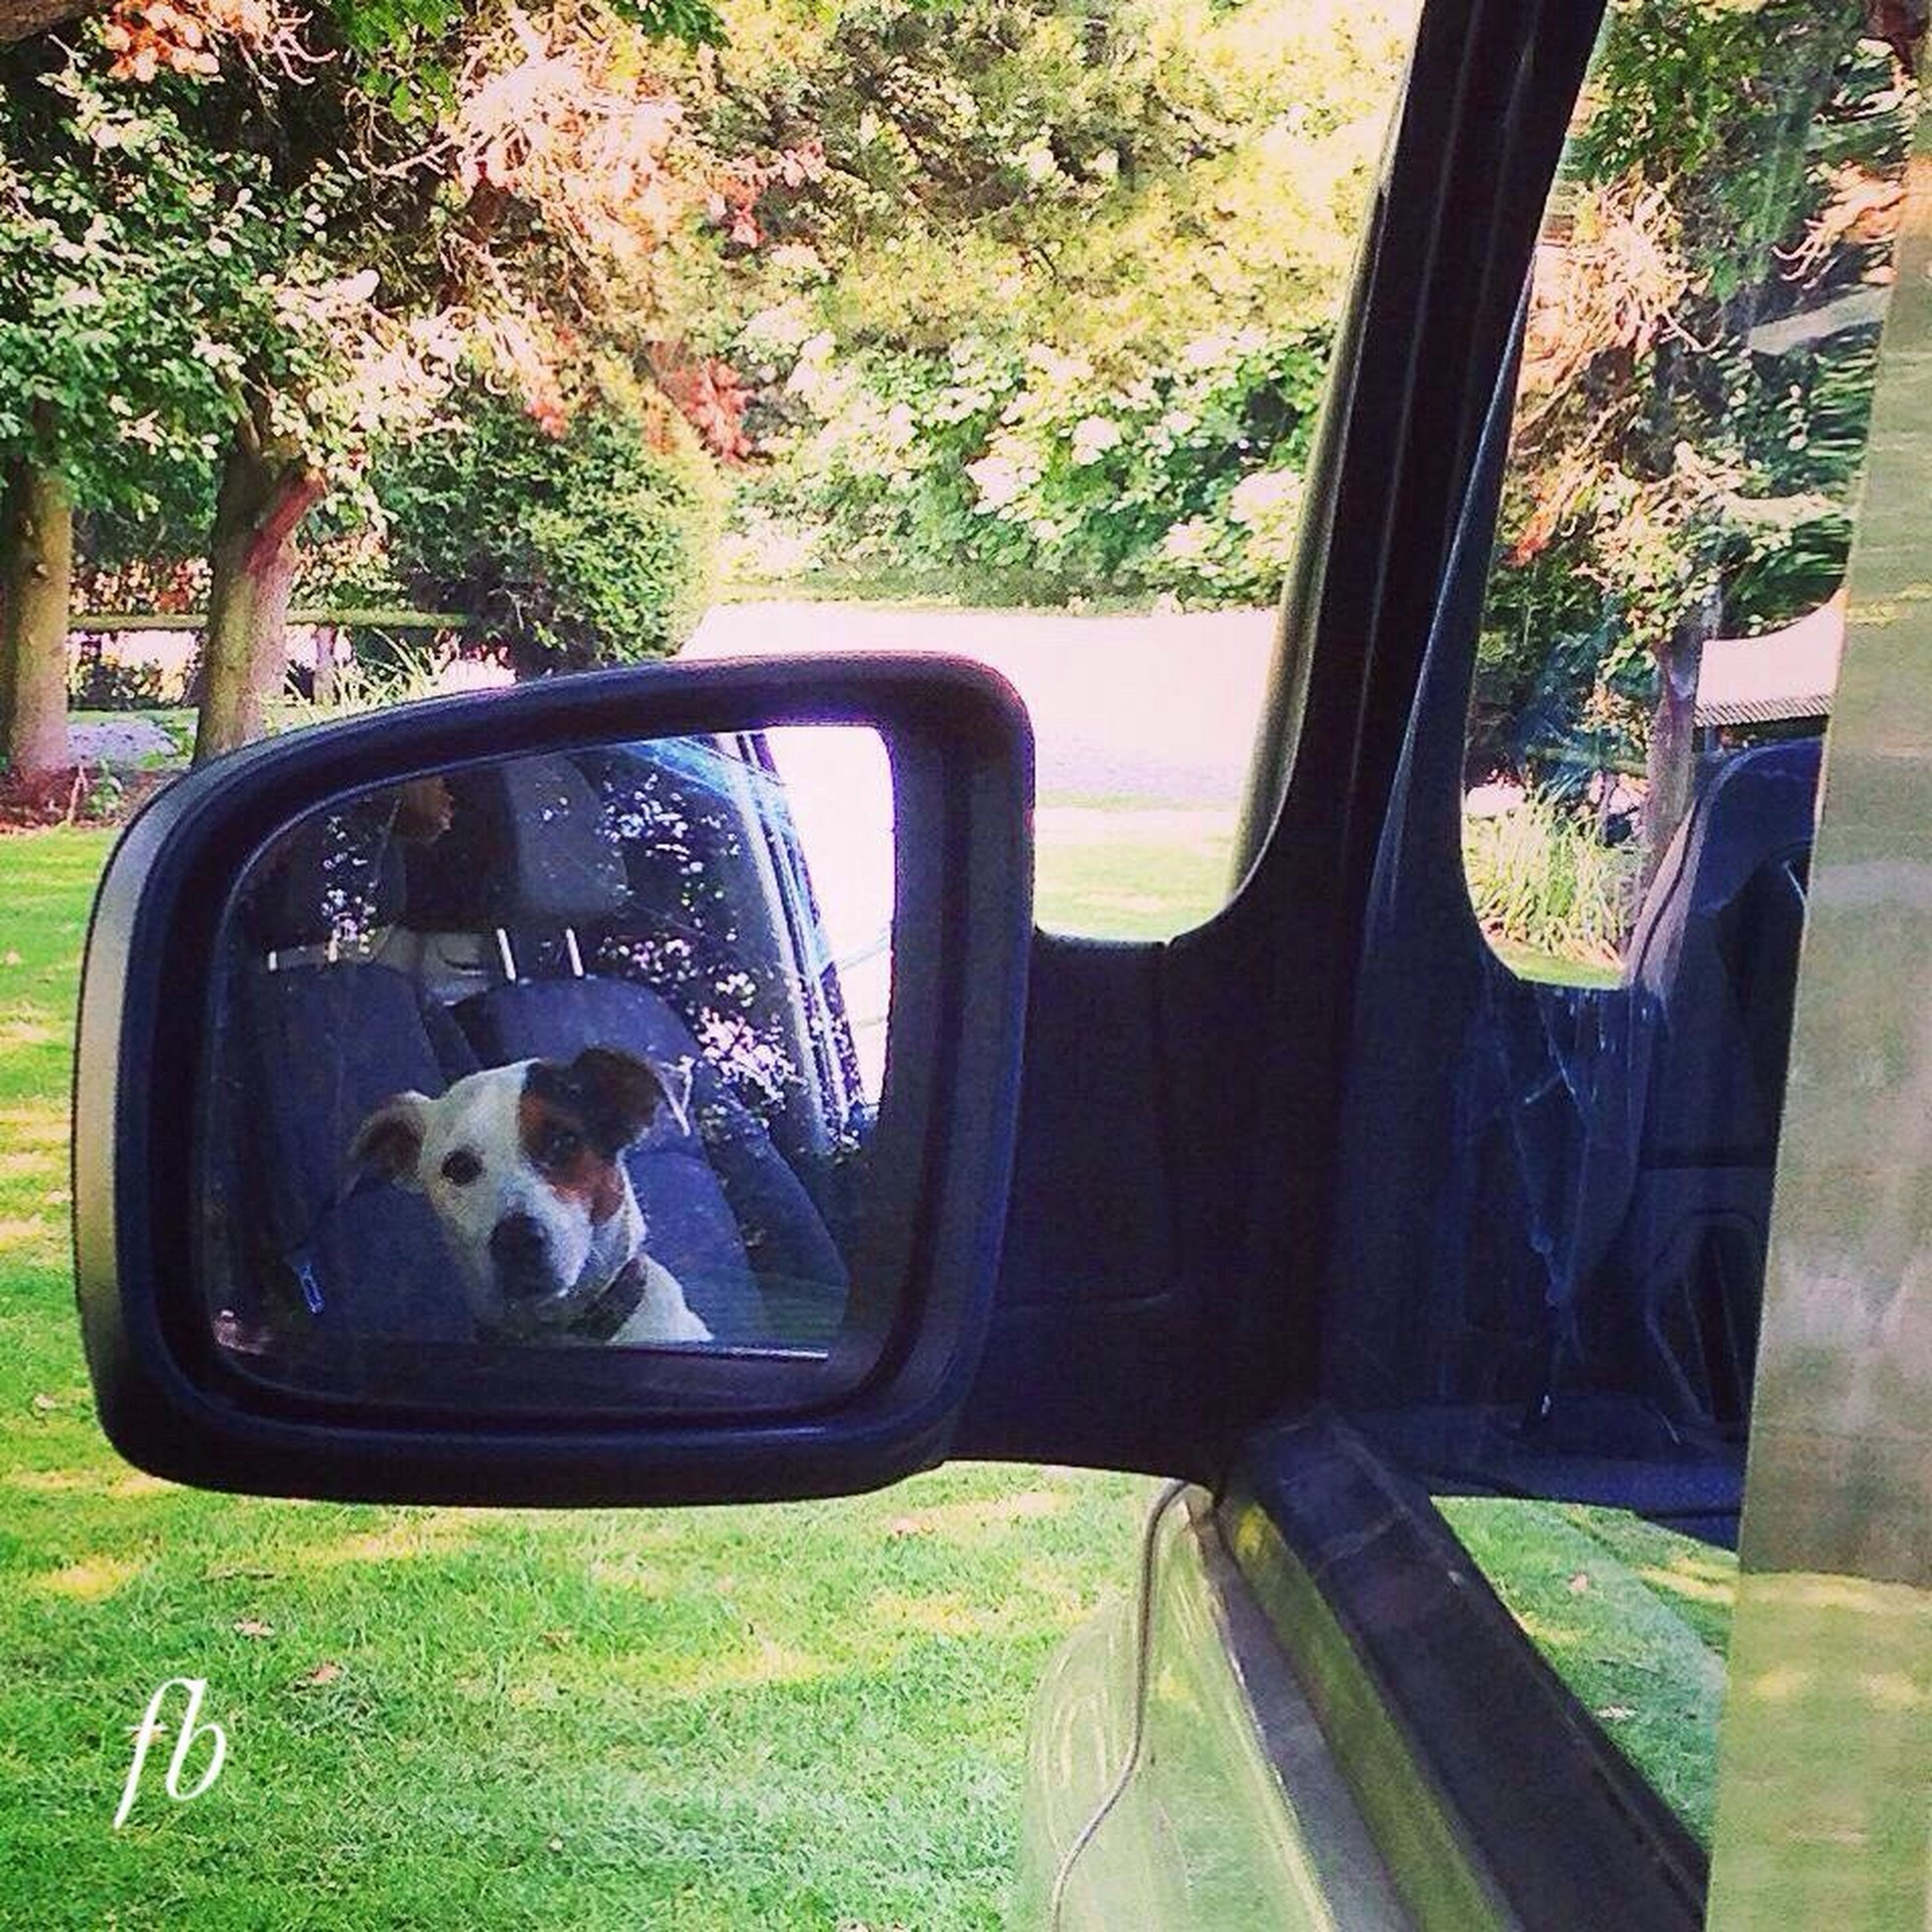 domestic animals, pets, one animal, mammal, animal themes, transportation, car, land vehicle, mode of transport, dog, window, glass - material, tree, grass, sitting, transparent, looking through window, relaxation, vehicle interior, reflection